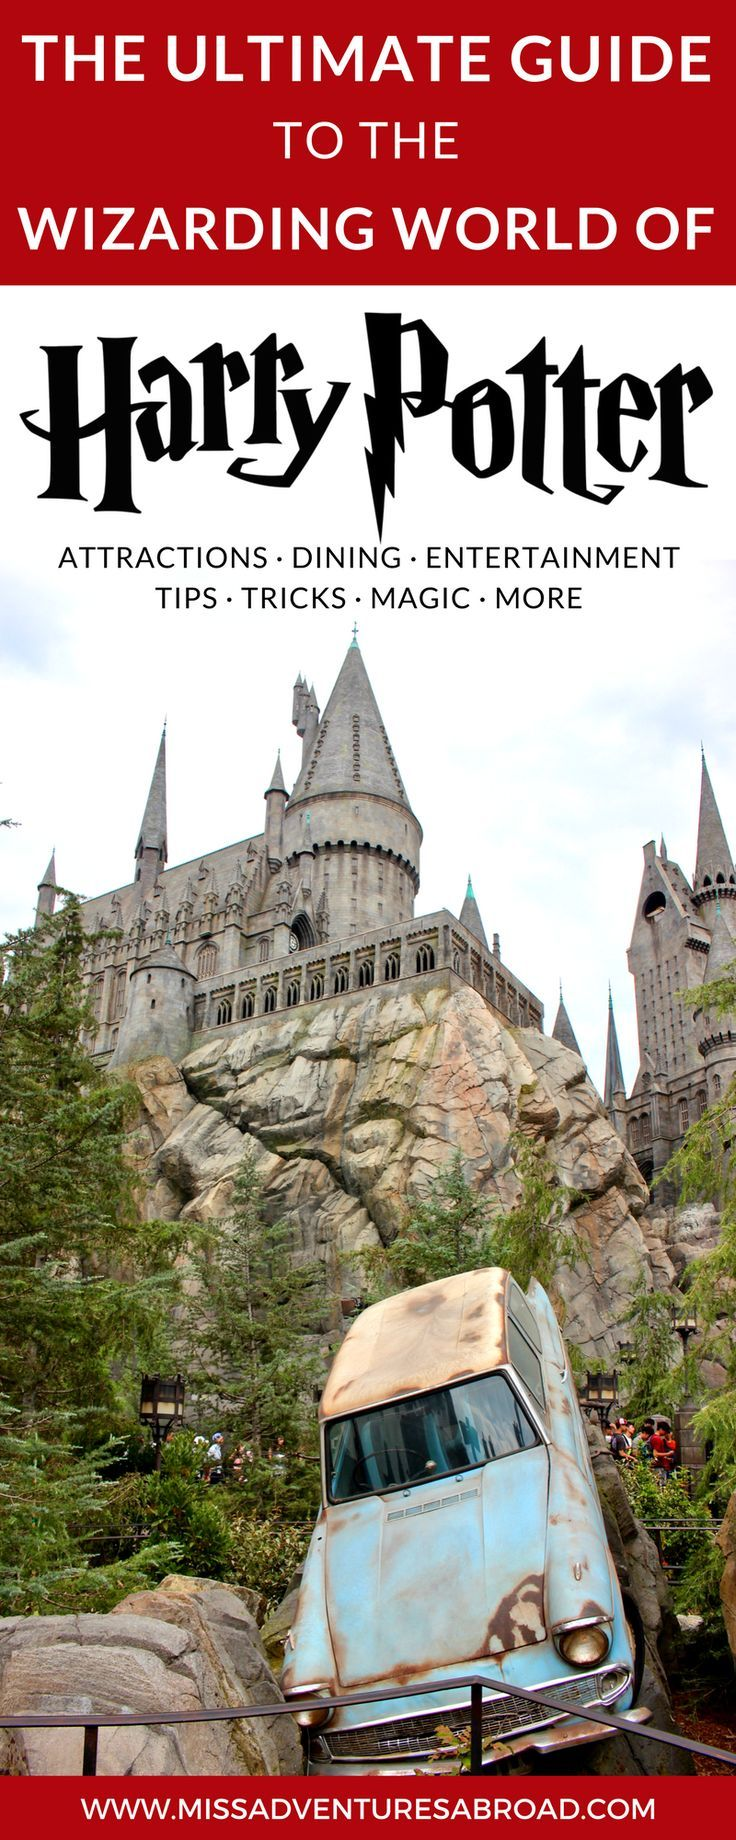 The Ultimate Guide To Universal Studios' Wizarding World of Harry Potter For Muggles · Discover the best tips for visiting the Wizarding World of Harry Potter. You'll learn about the best attractions, dining experiences, shops, and entertainment in this magical world. From exciting rides to butterbeer you won't want to miss the wizarding world on your next trip to Orlando or Hollywood!